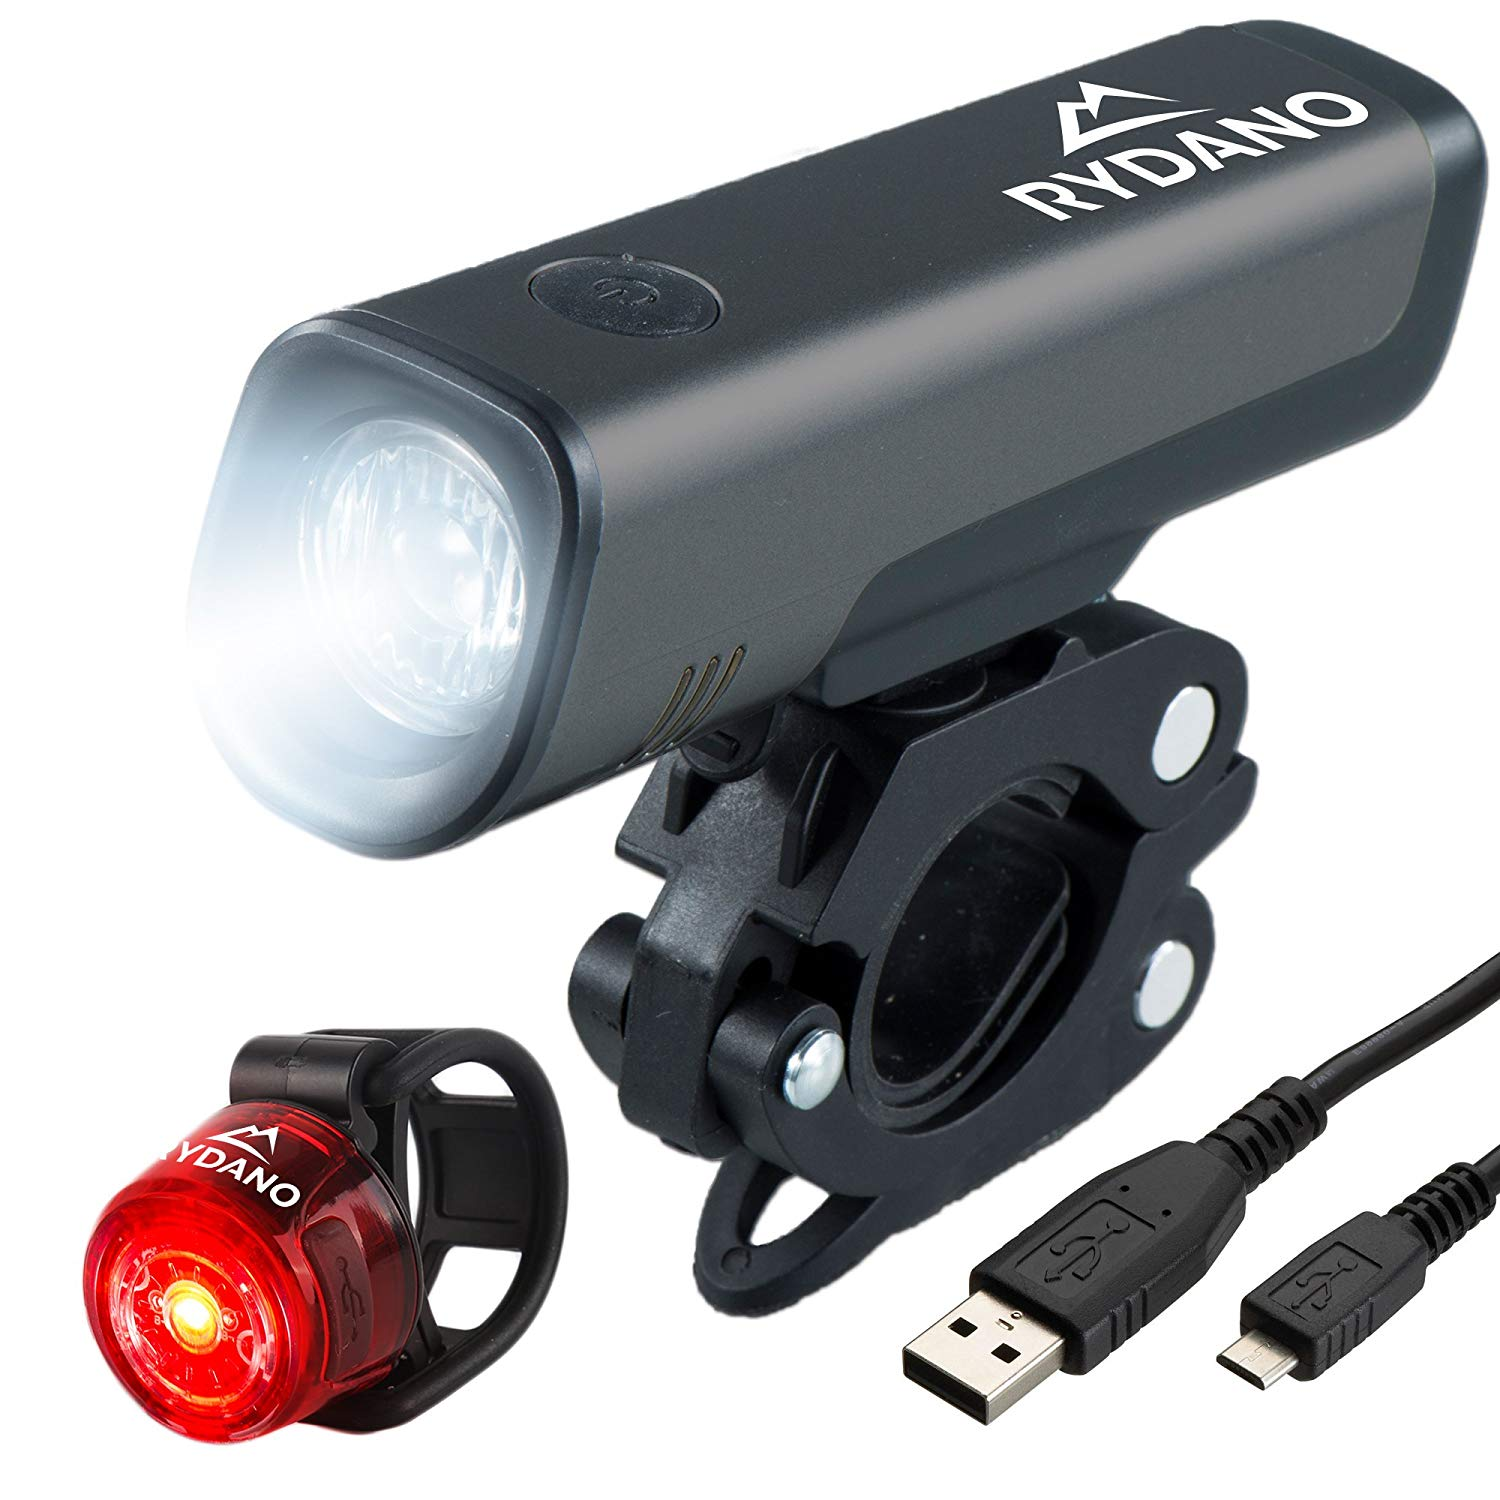 e4099d8401a Buy FREEMASTER USB Rechargeable Bike Light Set Waterproof LED ...